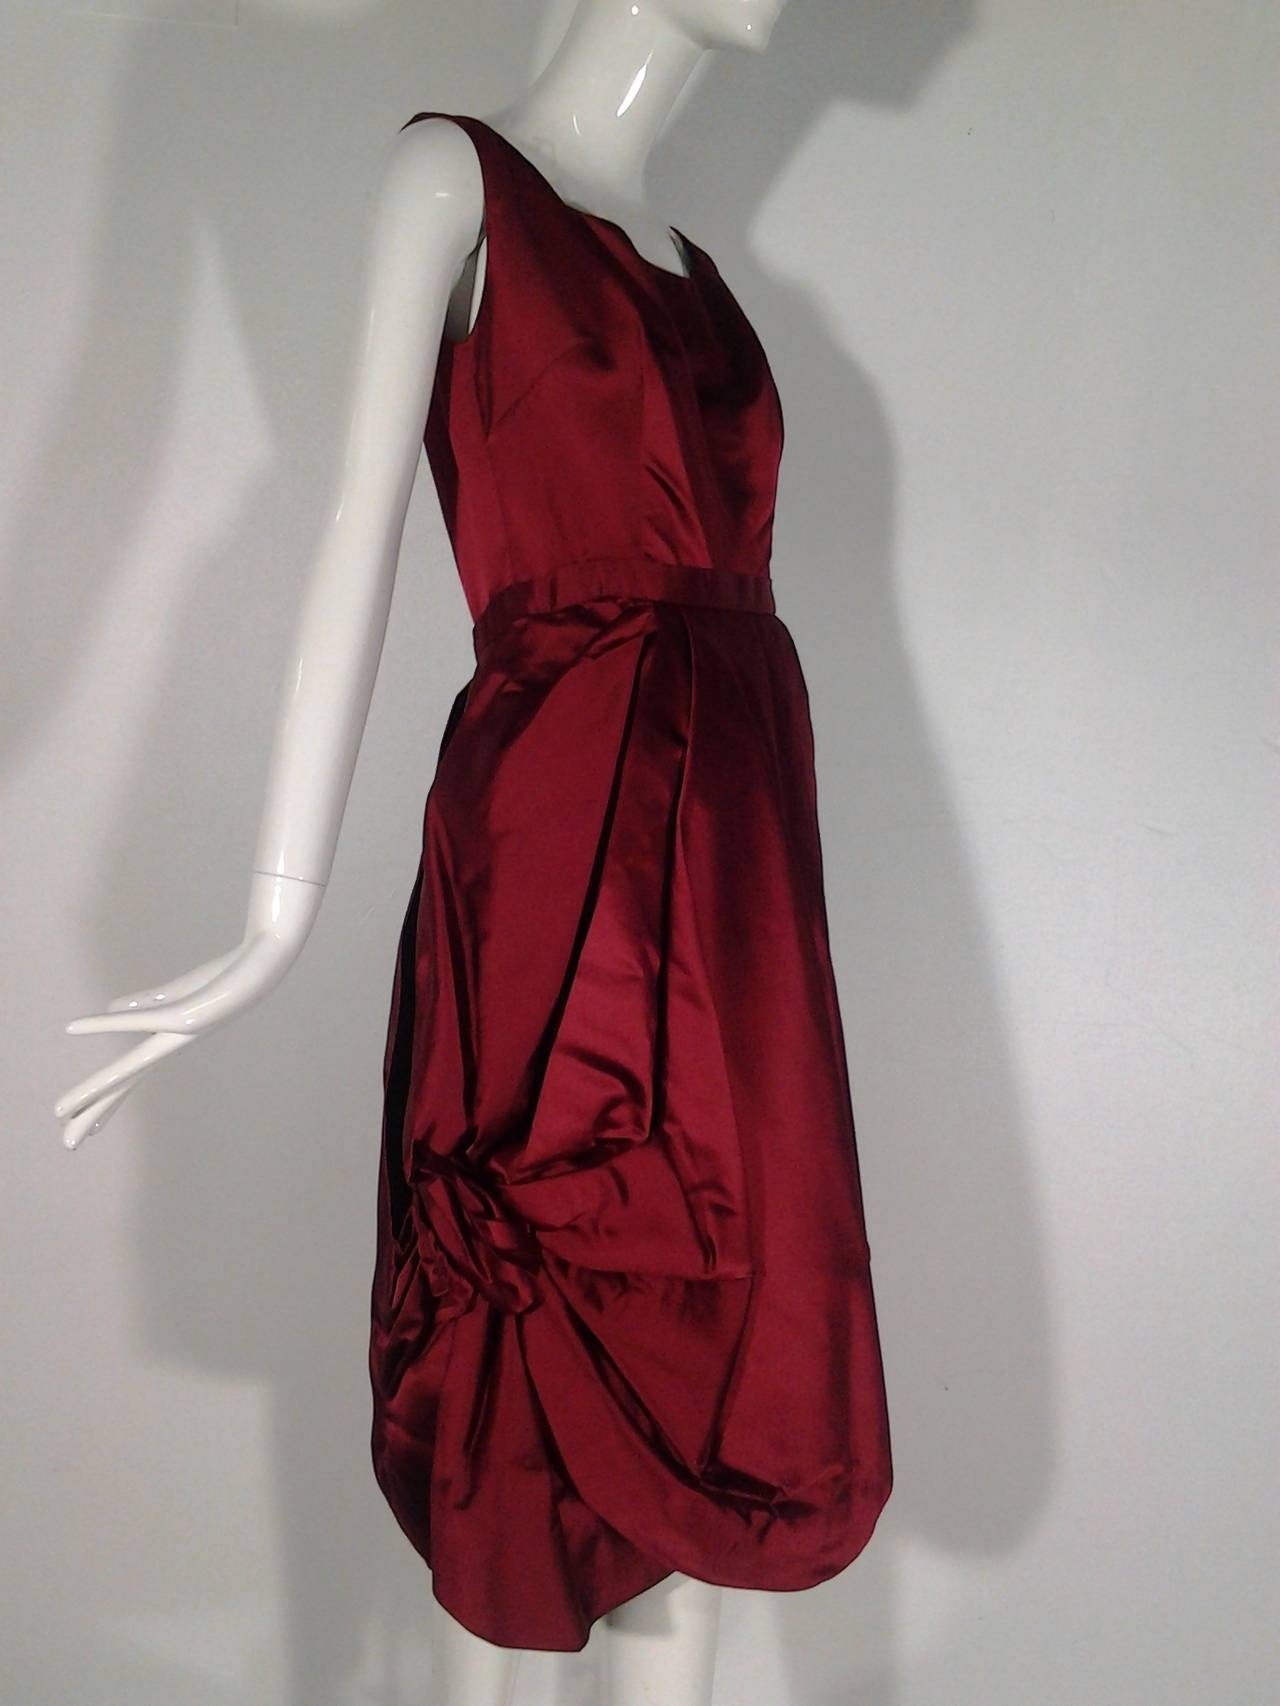 1950s Nan Duskin Red Cocktail Dress Featuring Floral Inspired Draped Skirt 2